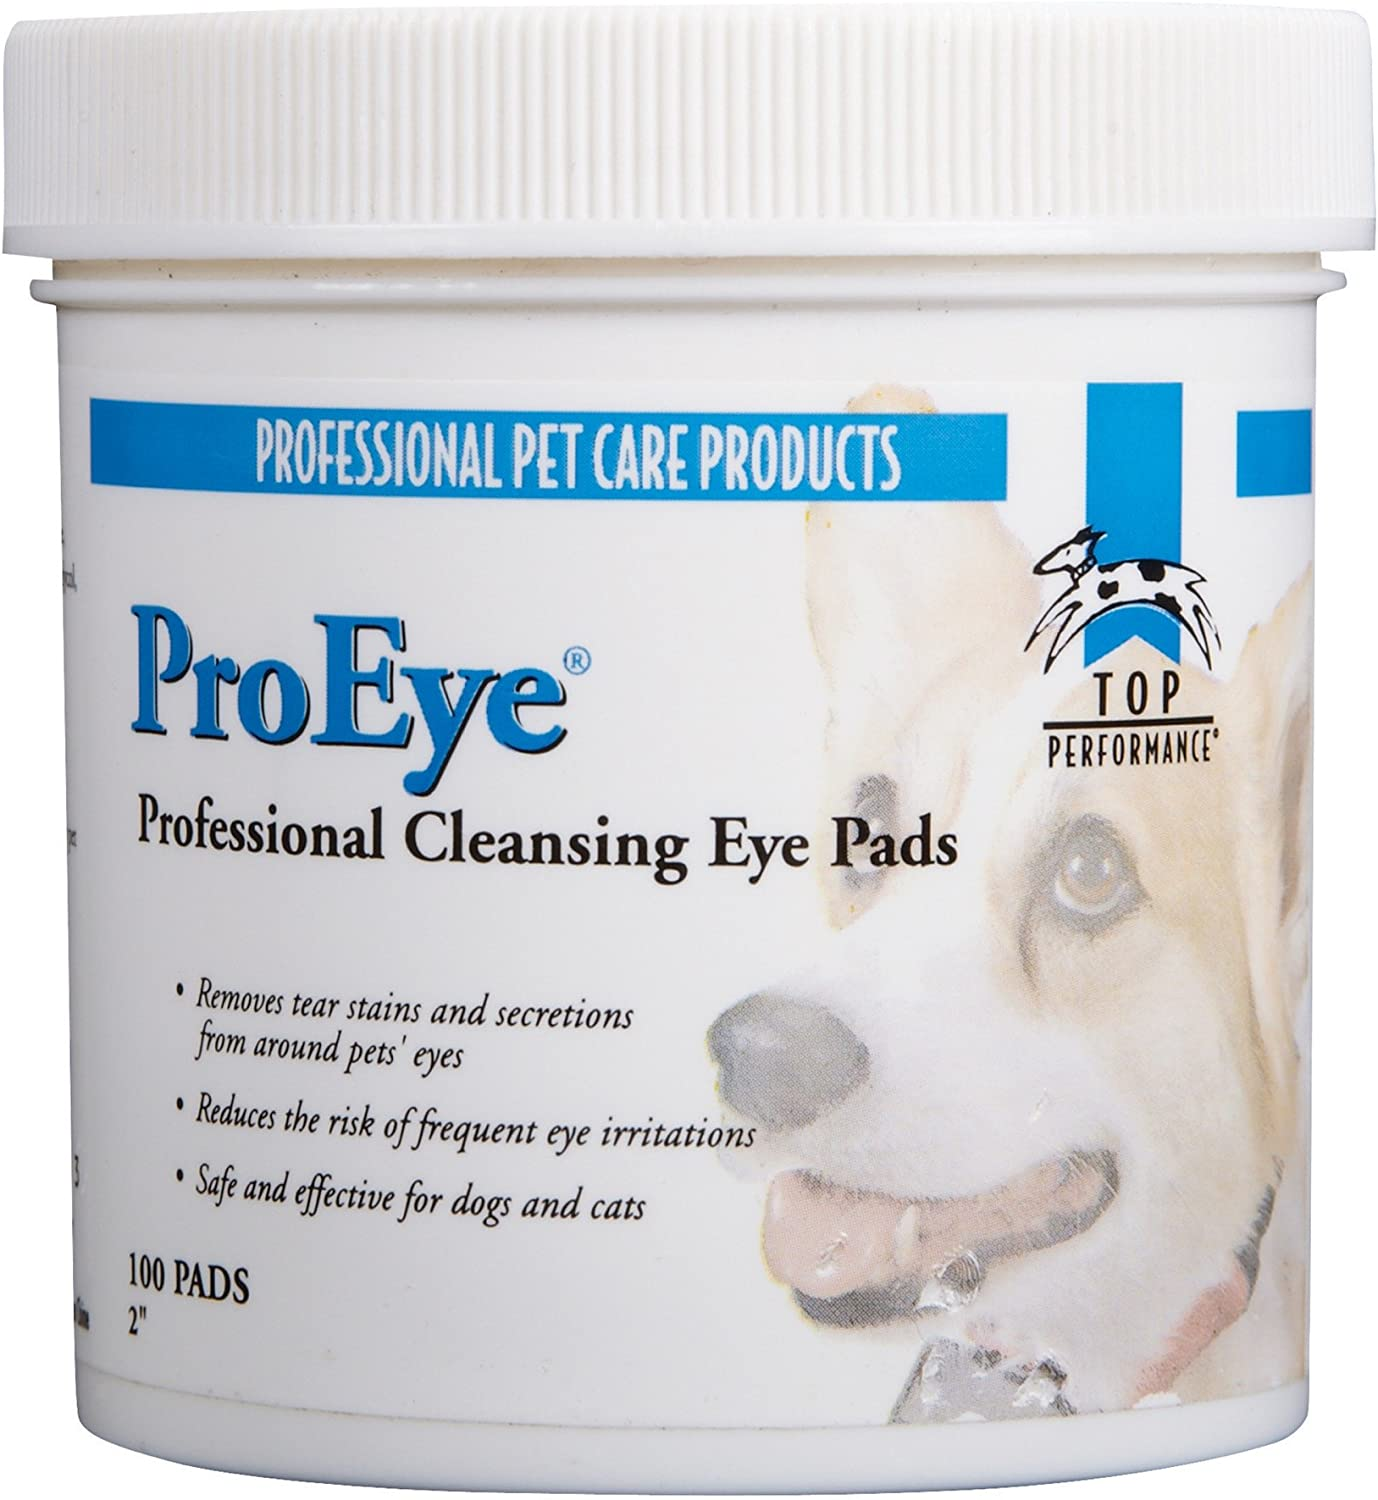 Top Performance Cleansing Pads for Pets- Safe and Effective Pads for Cleaning Teeth, Eyes, & Ears